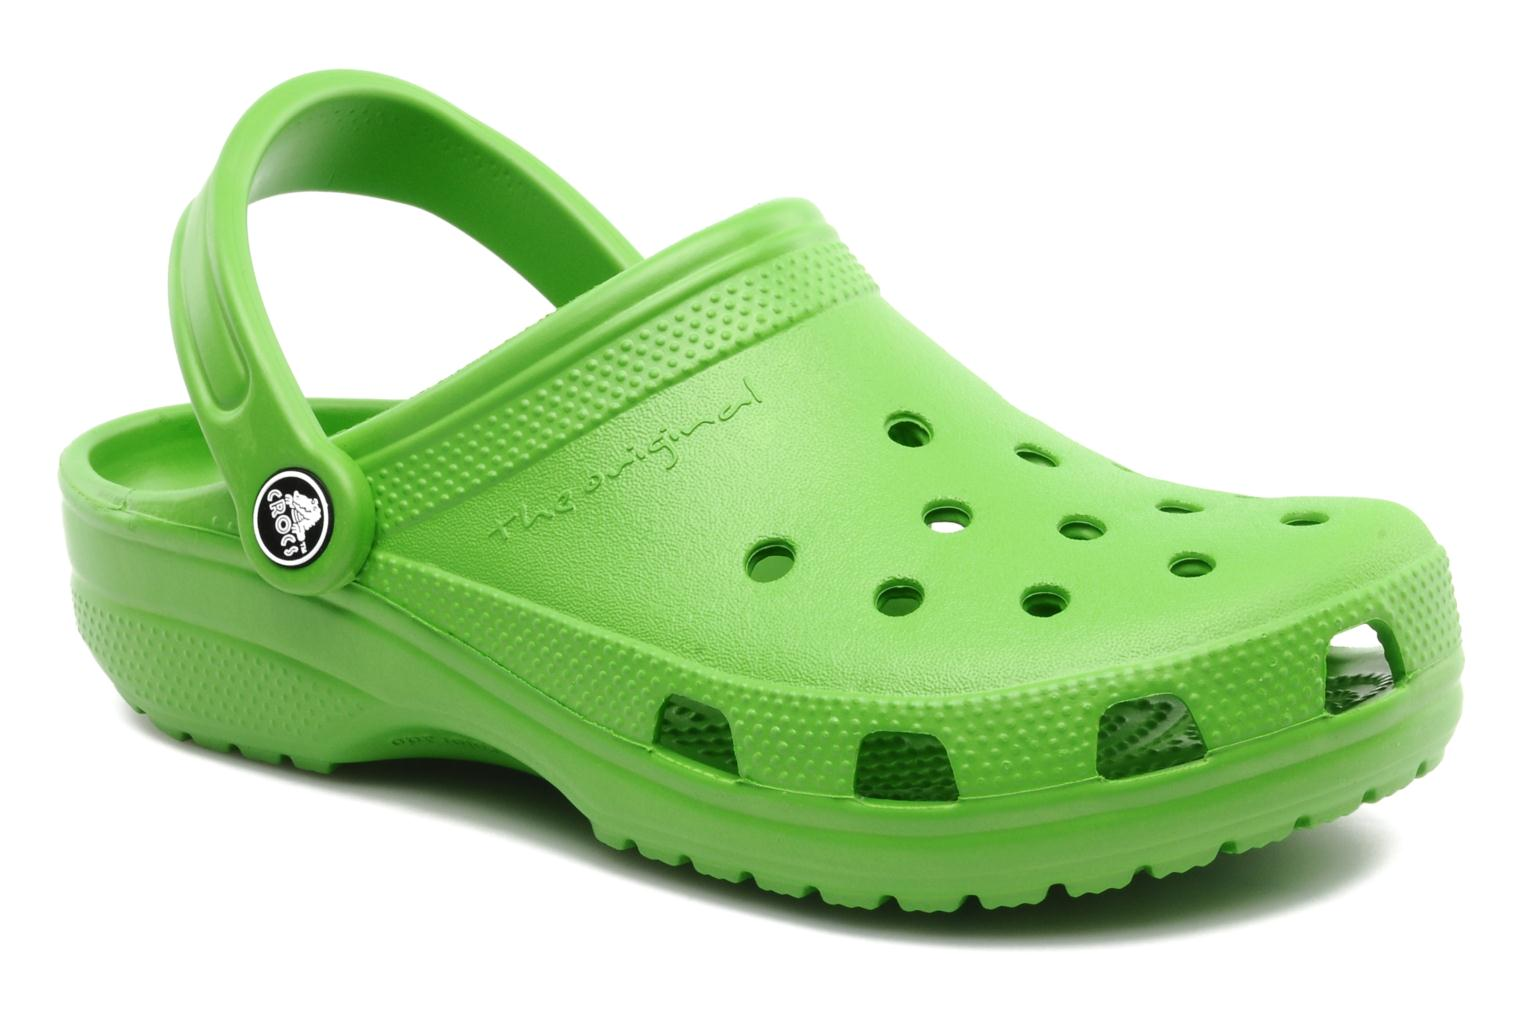 Come pulire le Crocs